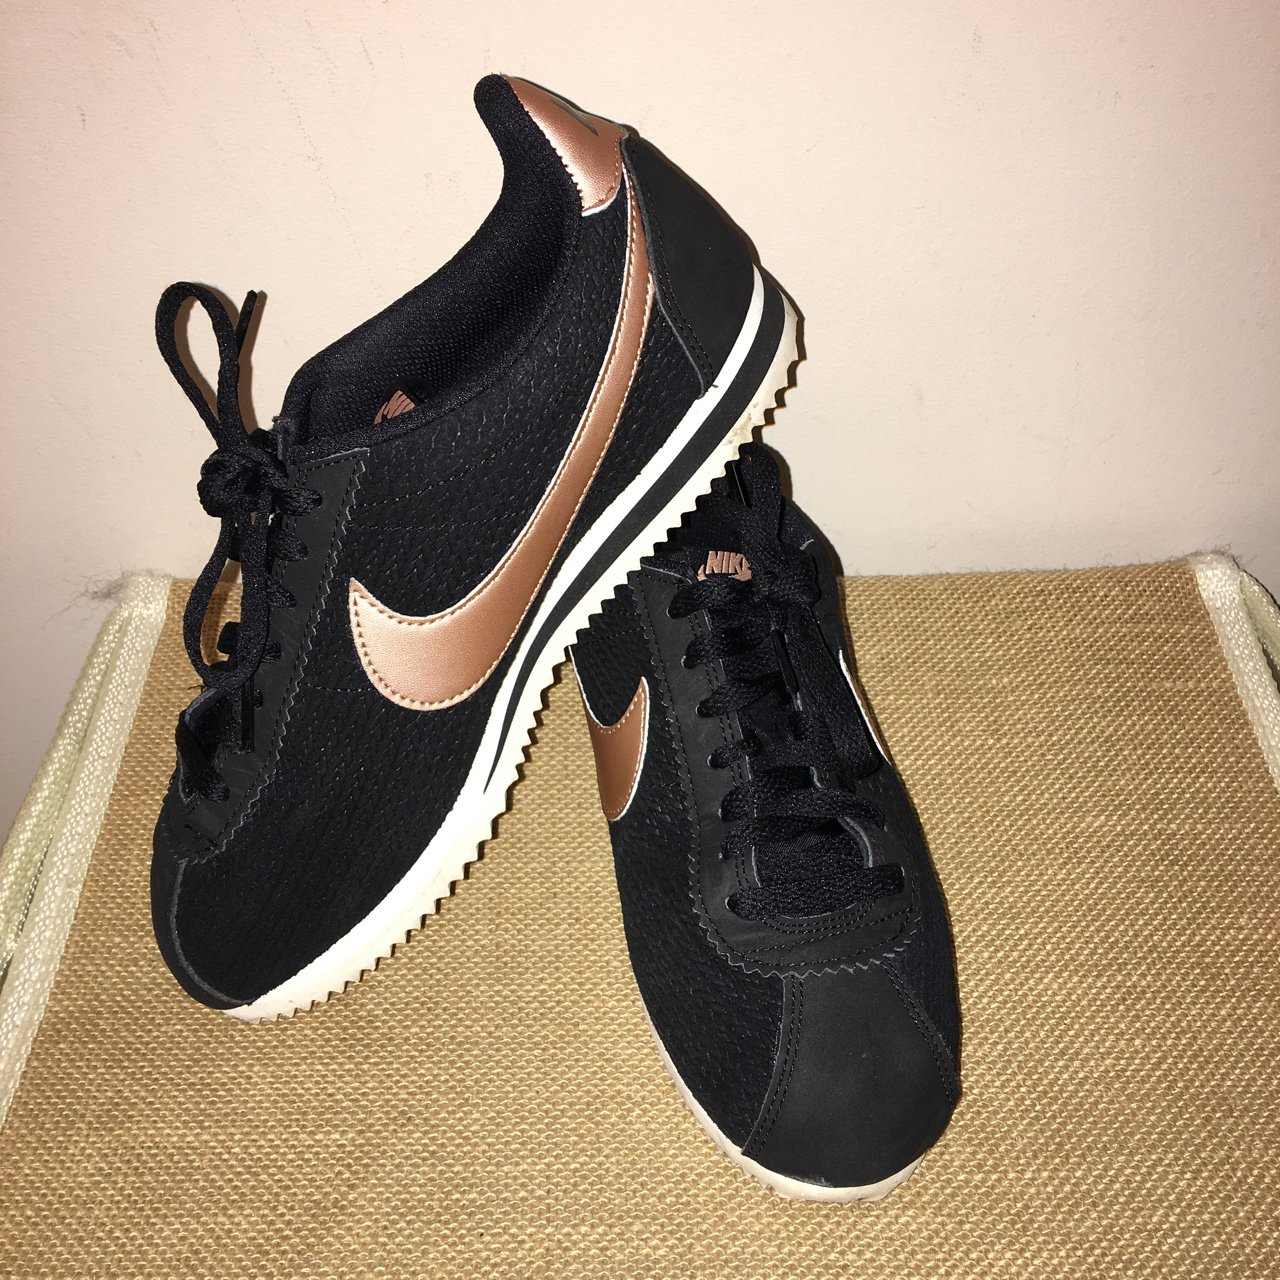 official photos 22063 6217c @hkeach. 2 years ago. Newhall, United Kingdom. Nike Cortez, black and rose  gold.